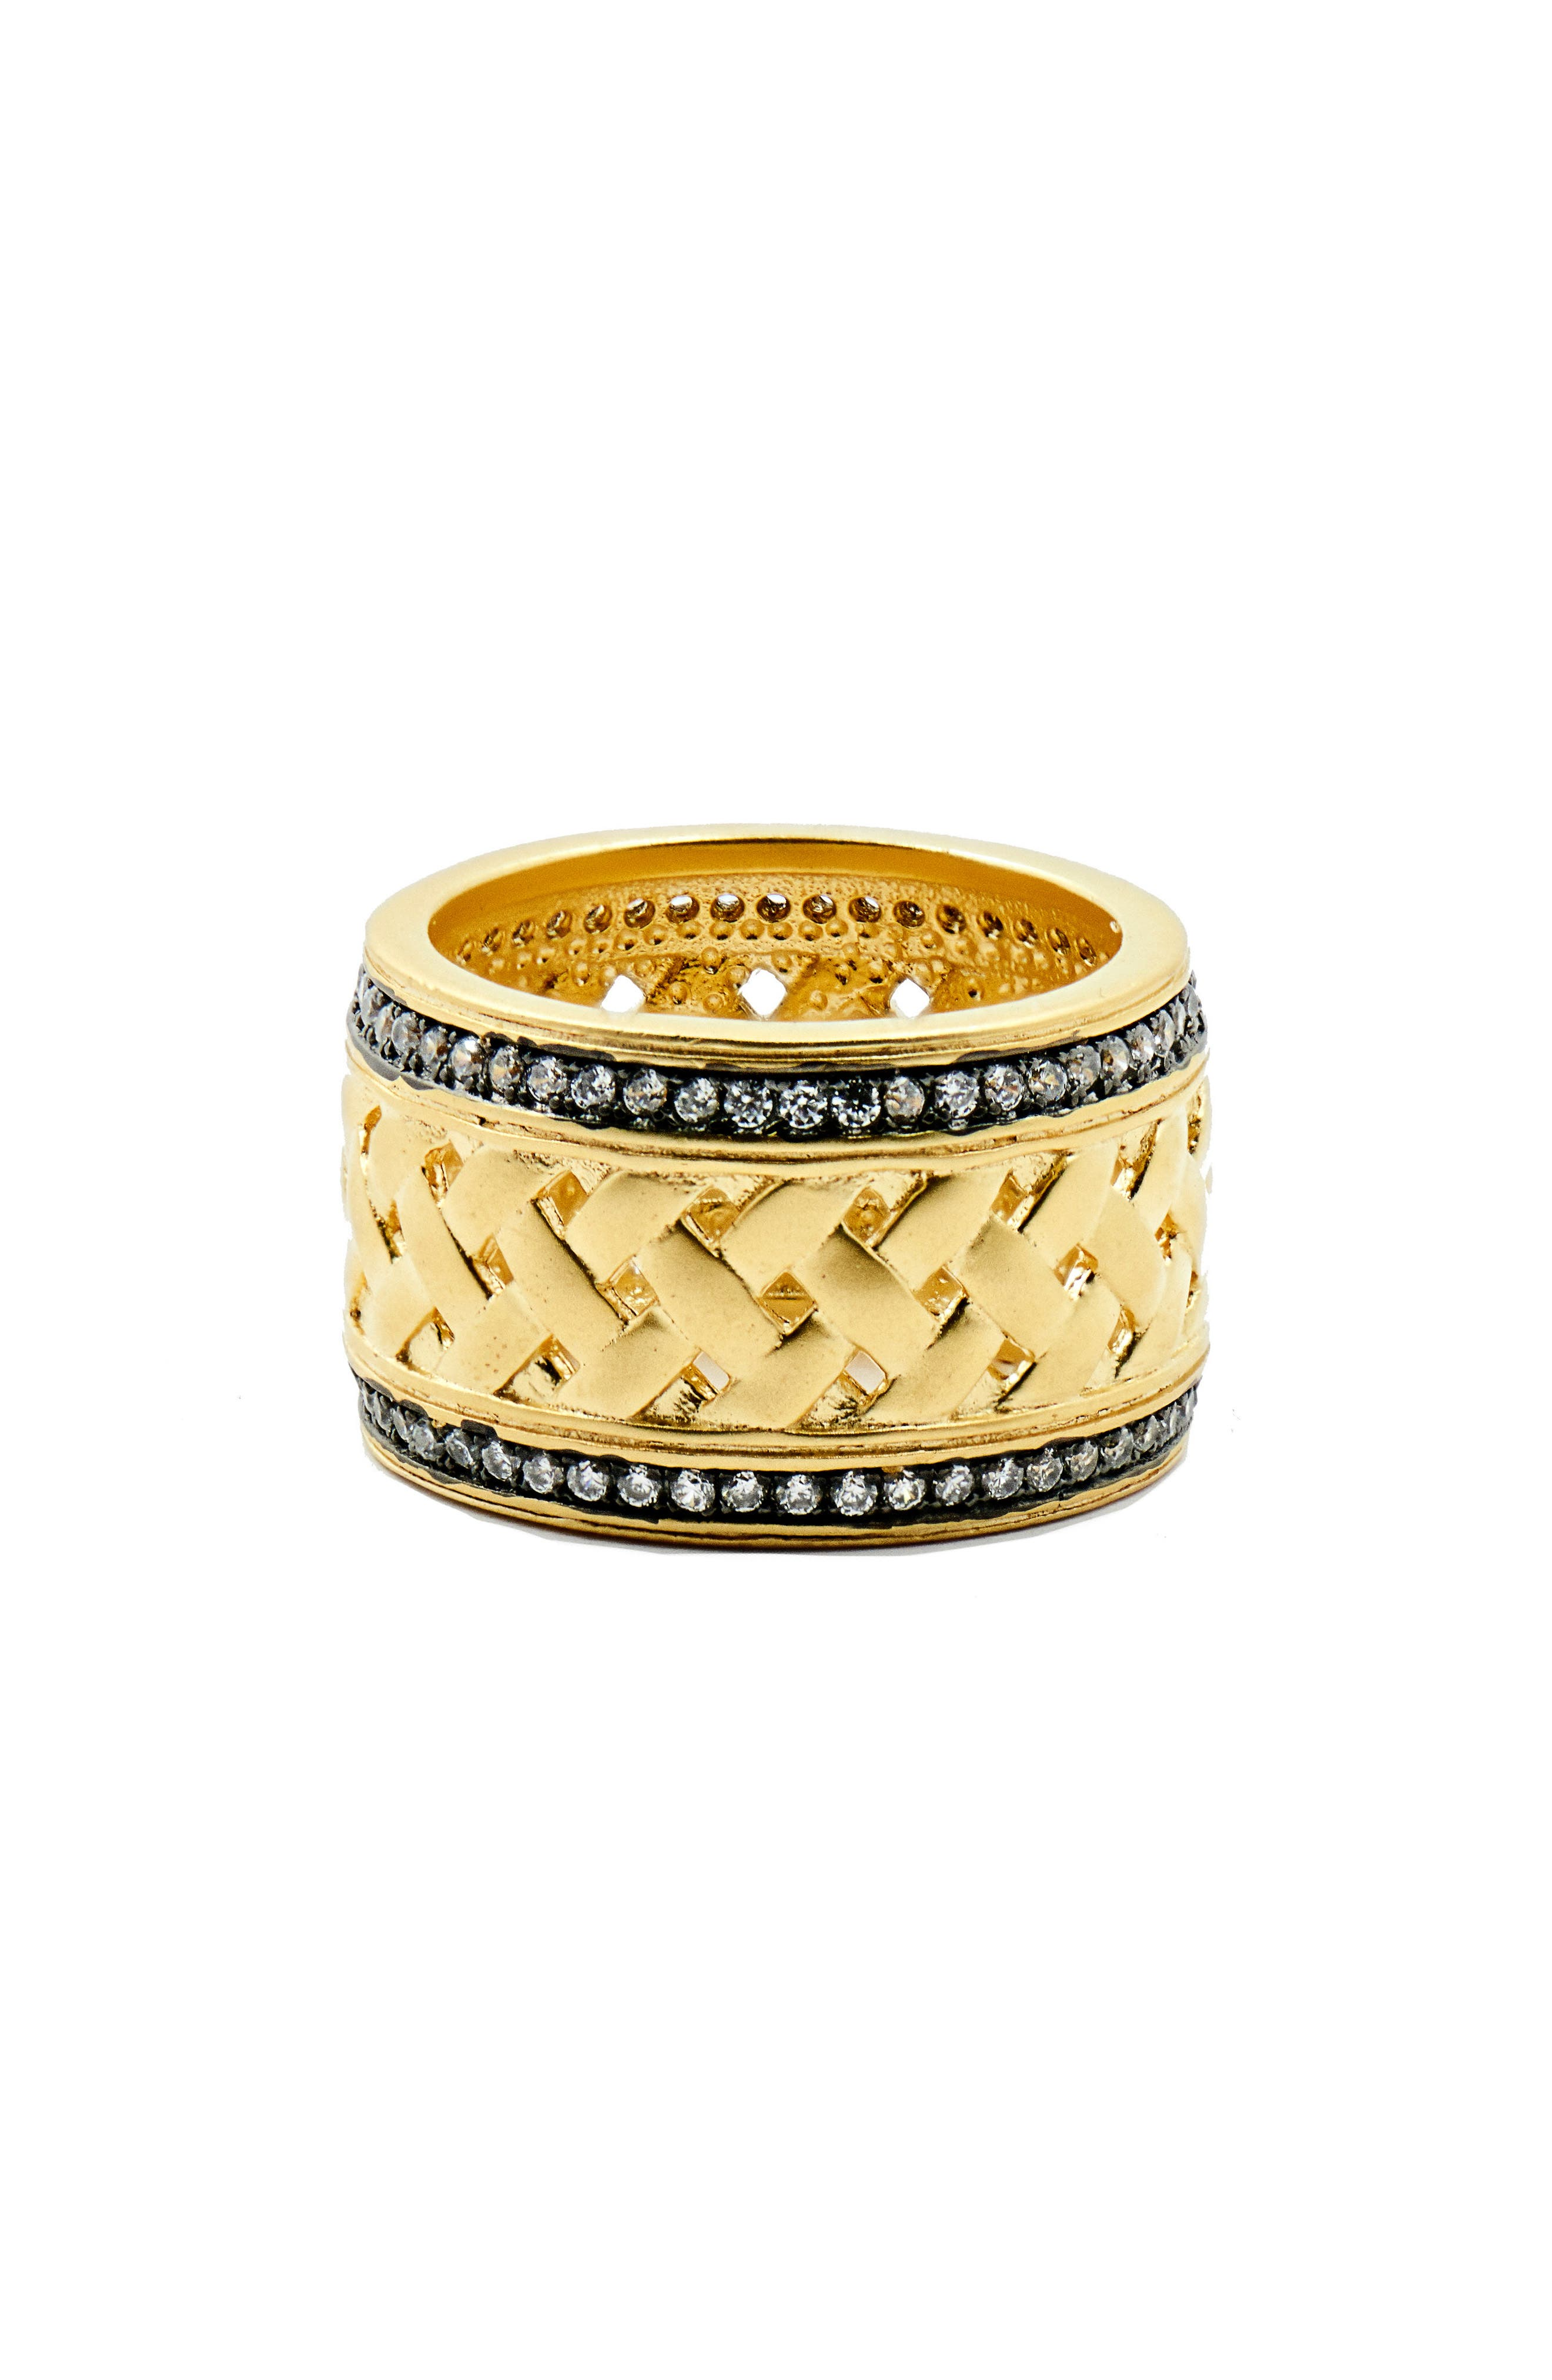 Alternate Image 1 Selected - FREIDA ROTHMAN Textured Ornaments Wide Band Ring